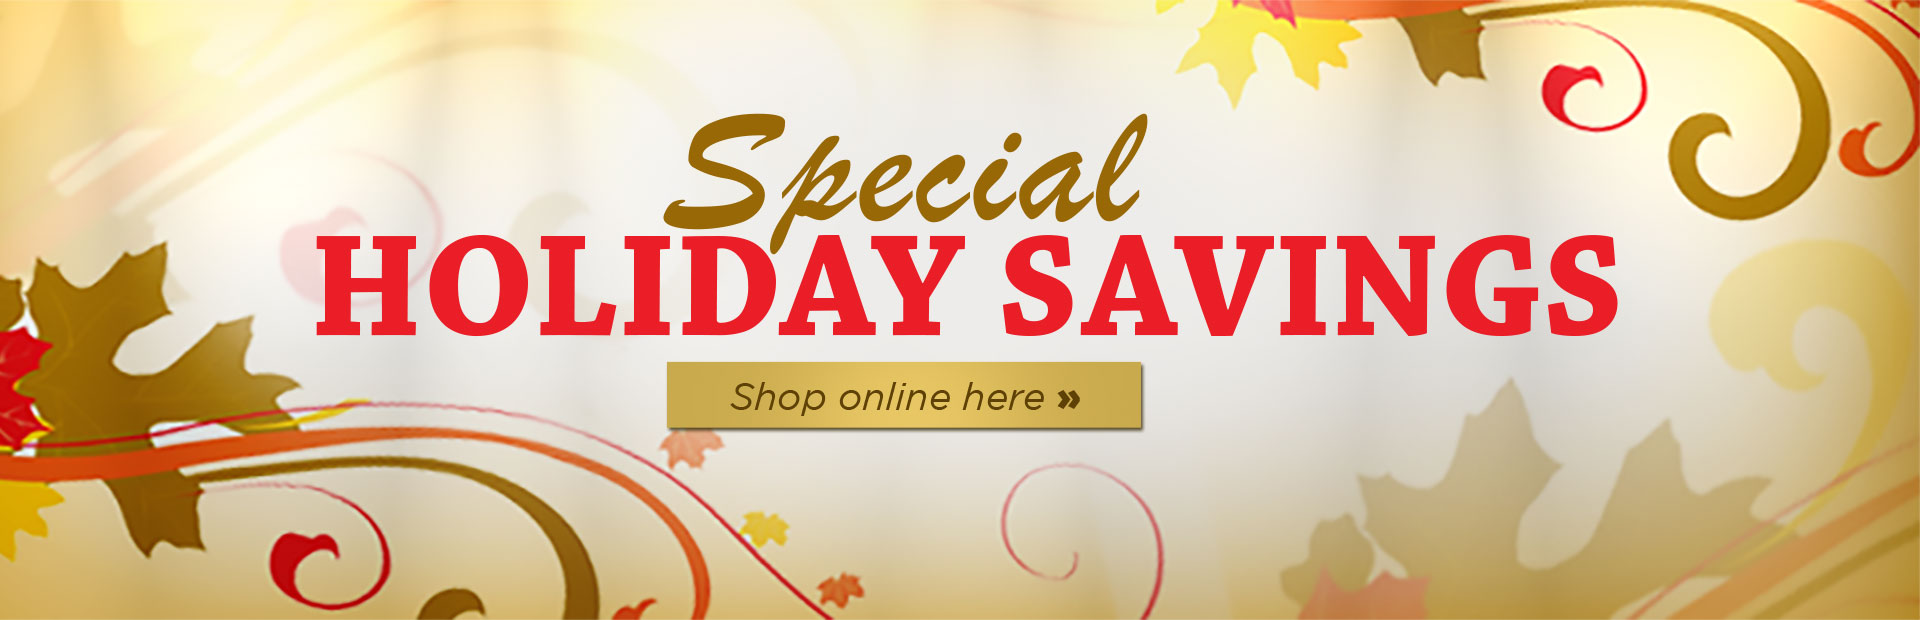 We offer special holiday savings! Click here to shop online.